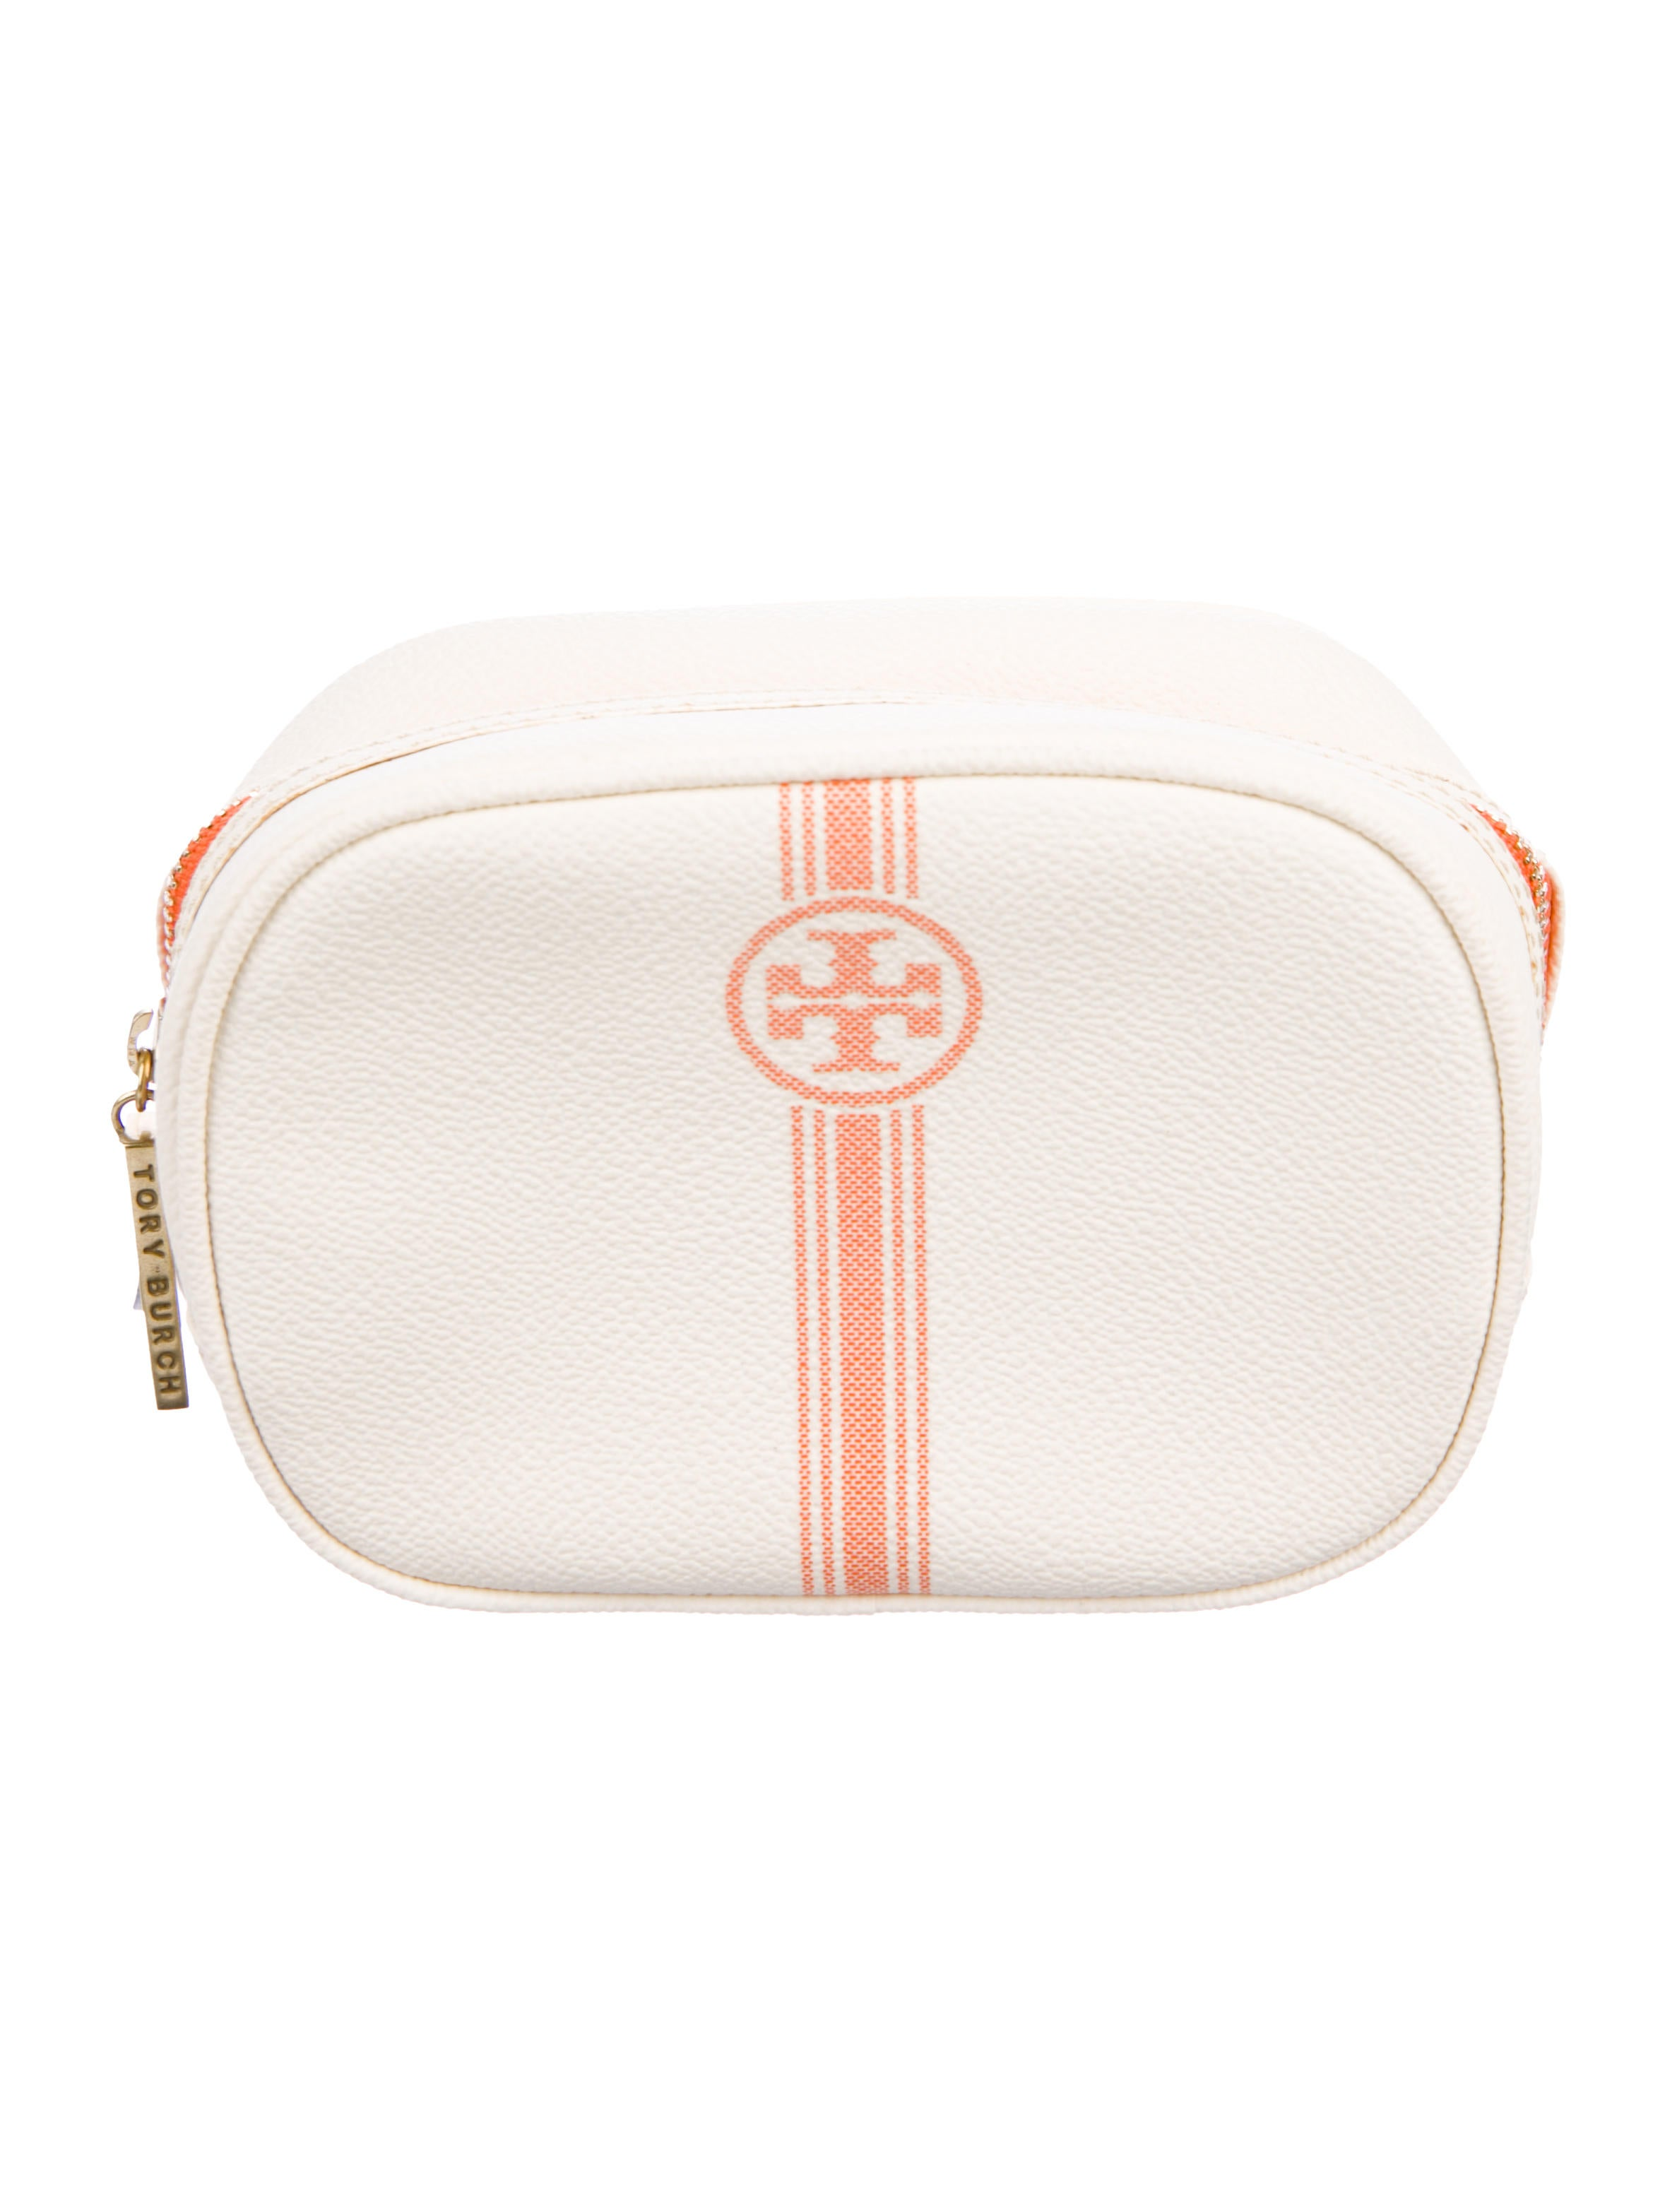 397bf767ea0e Tory Burch Roslyn Small Cosmetic Case w  Tags - Accessories ...